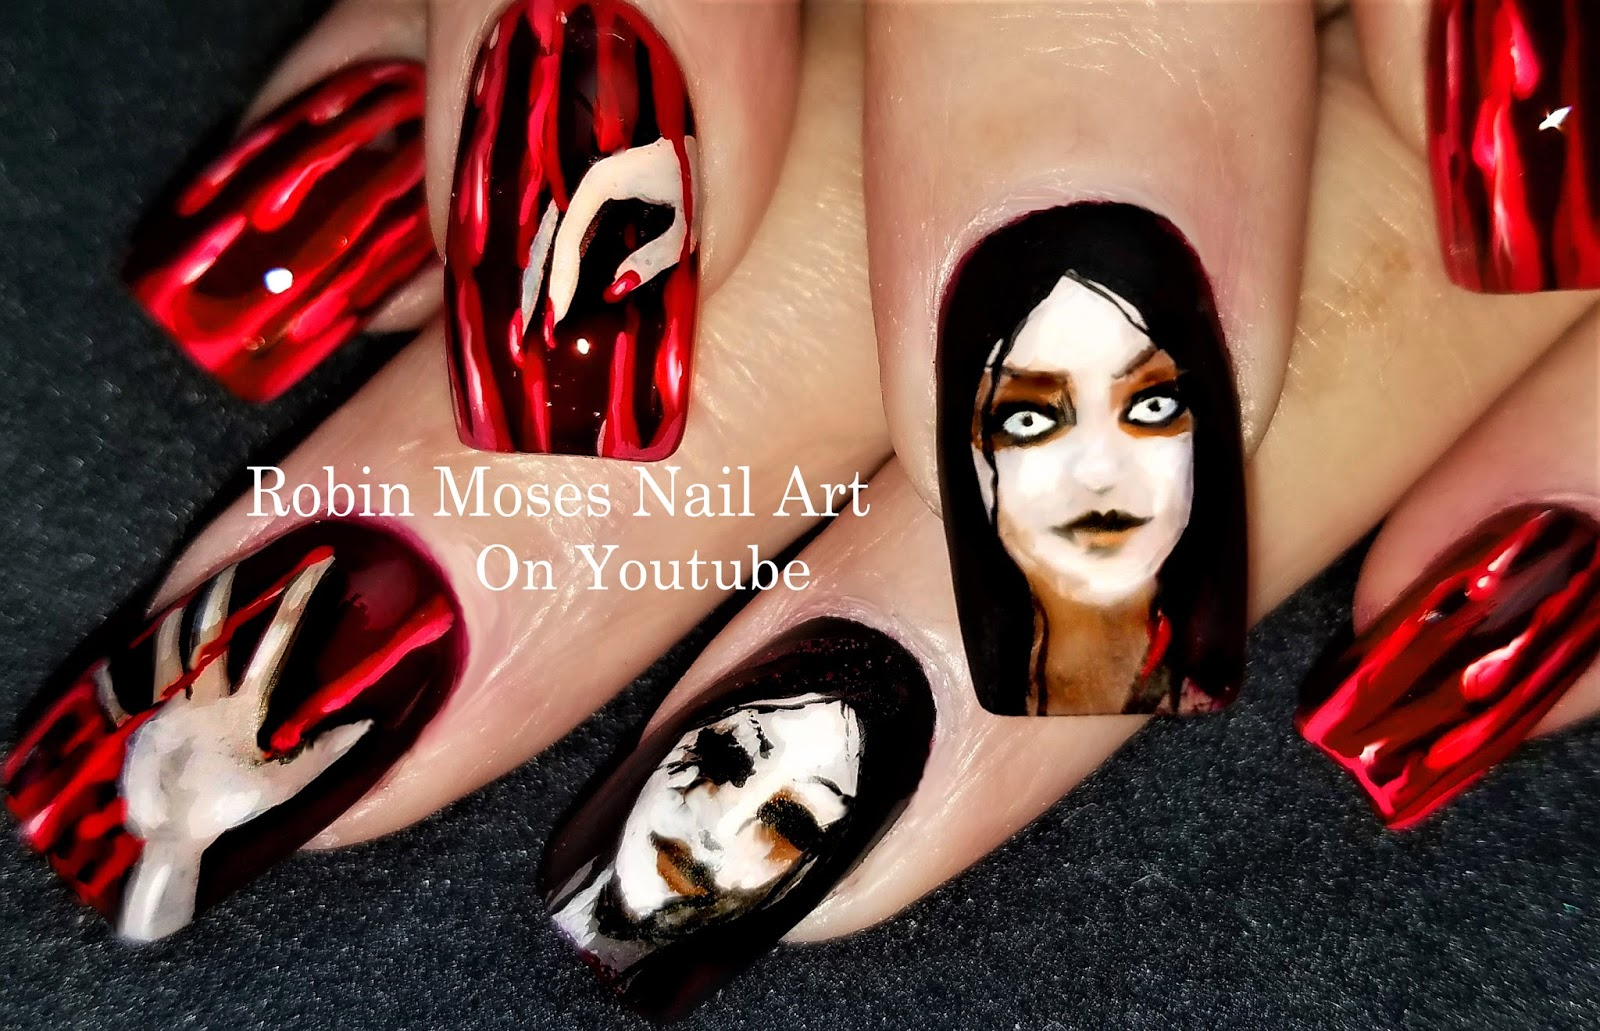 Nail Art By Robin Moses Bloodwitch Halloween Nails Blood Splatter